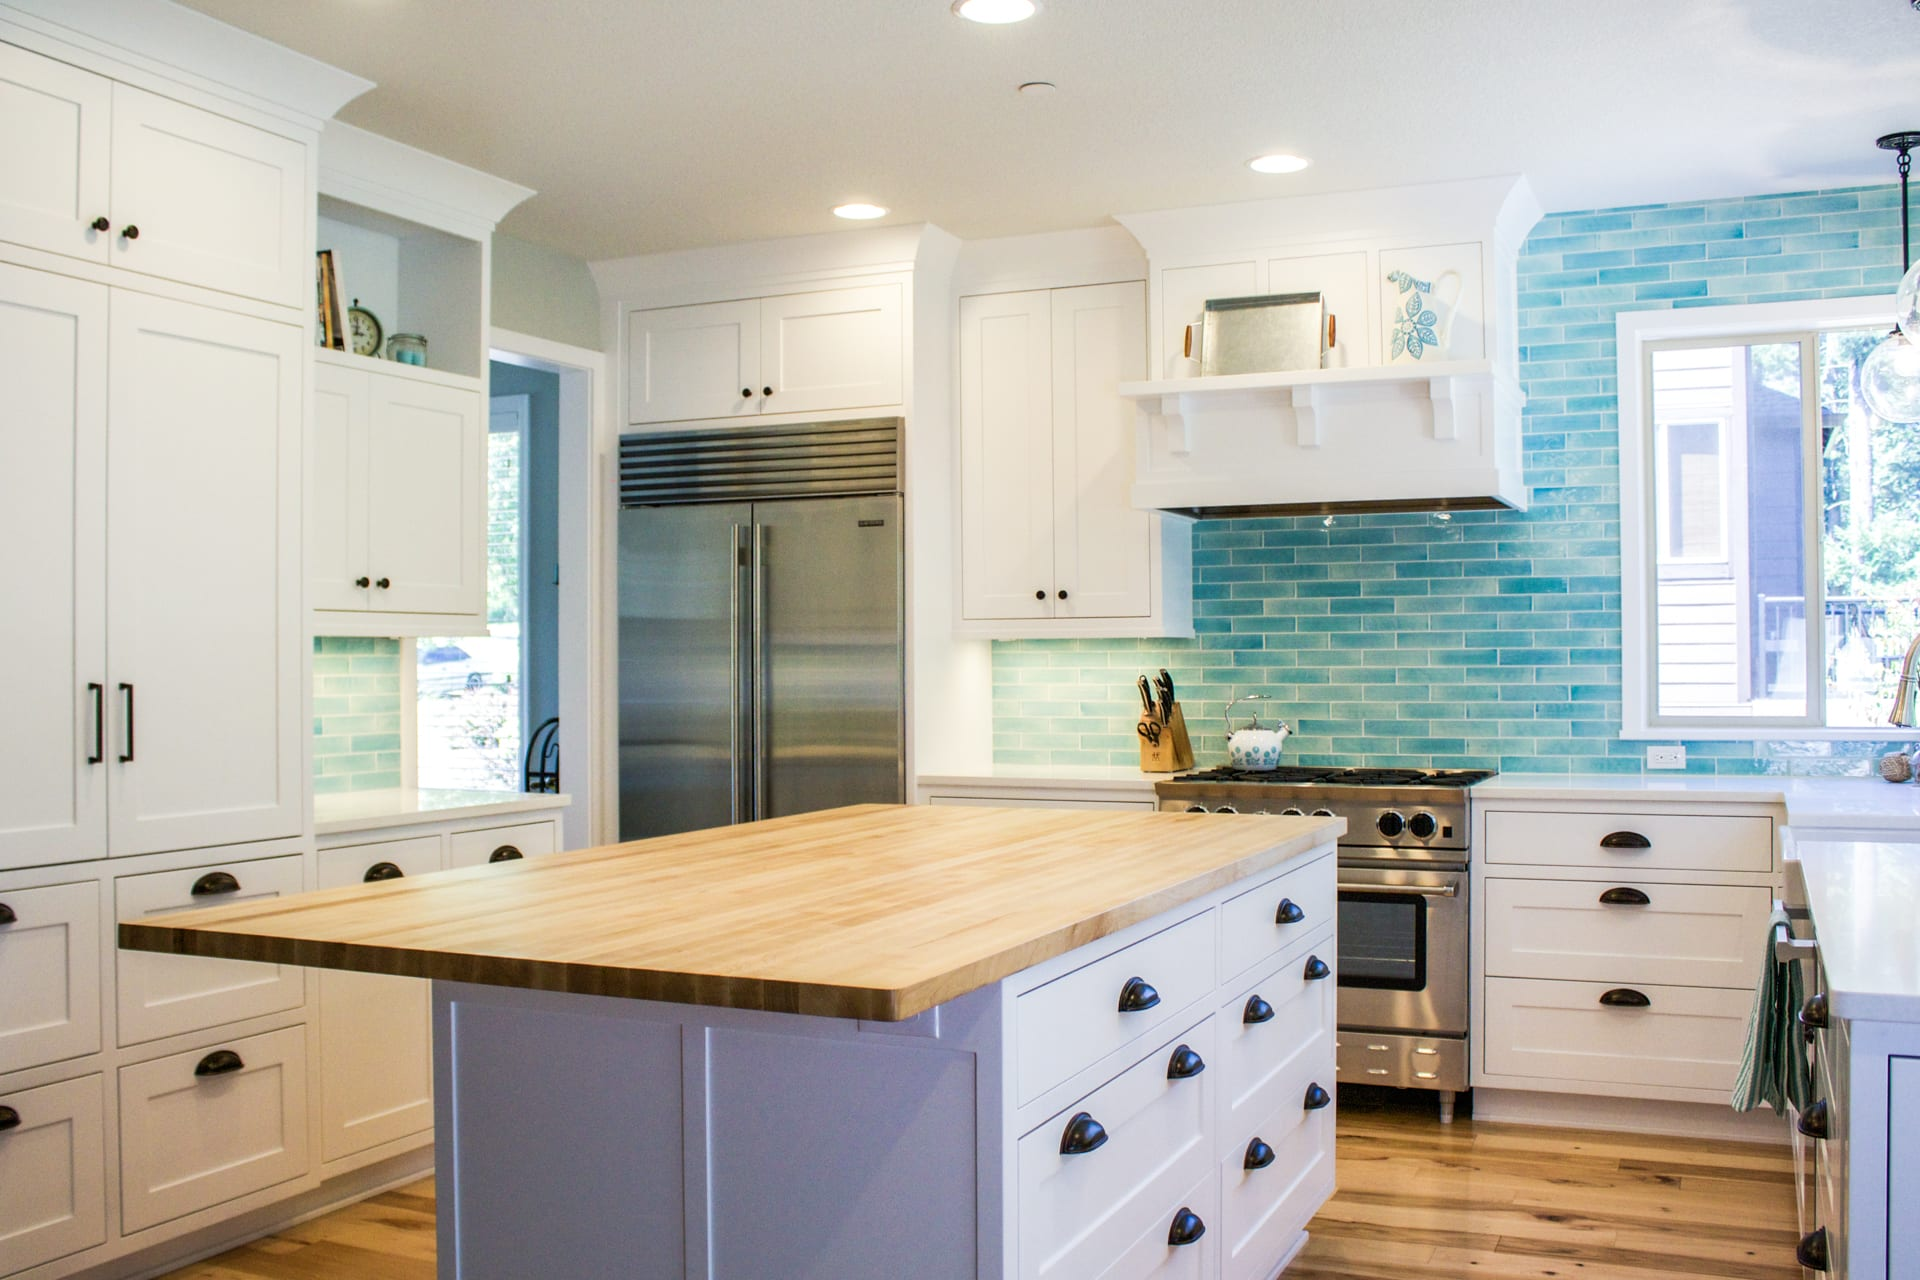 Custom designed kitchen with white cabinets and bold blue backsplash